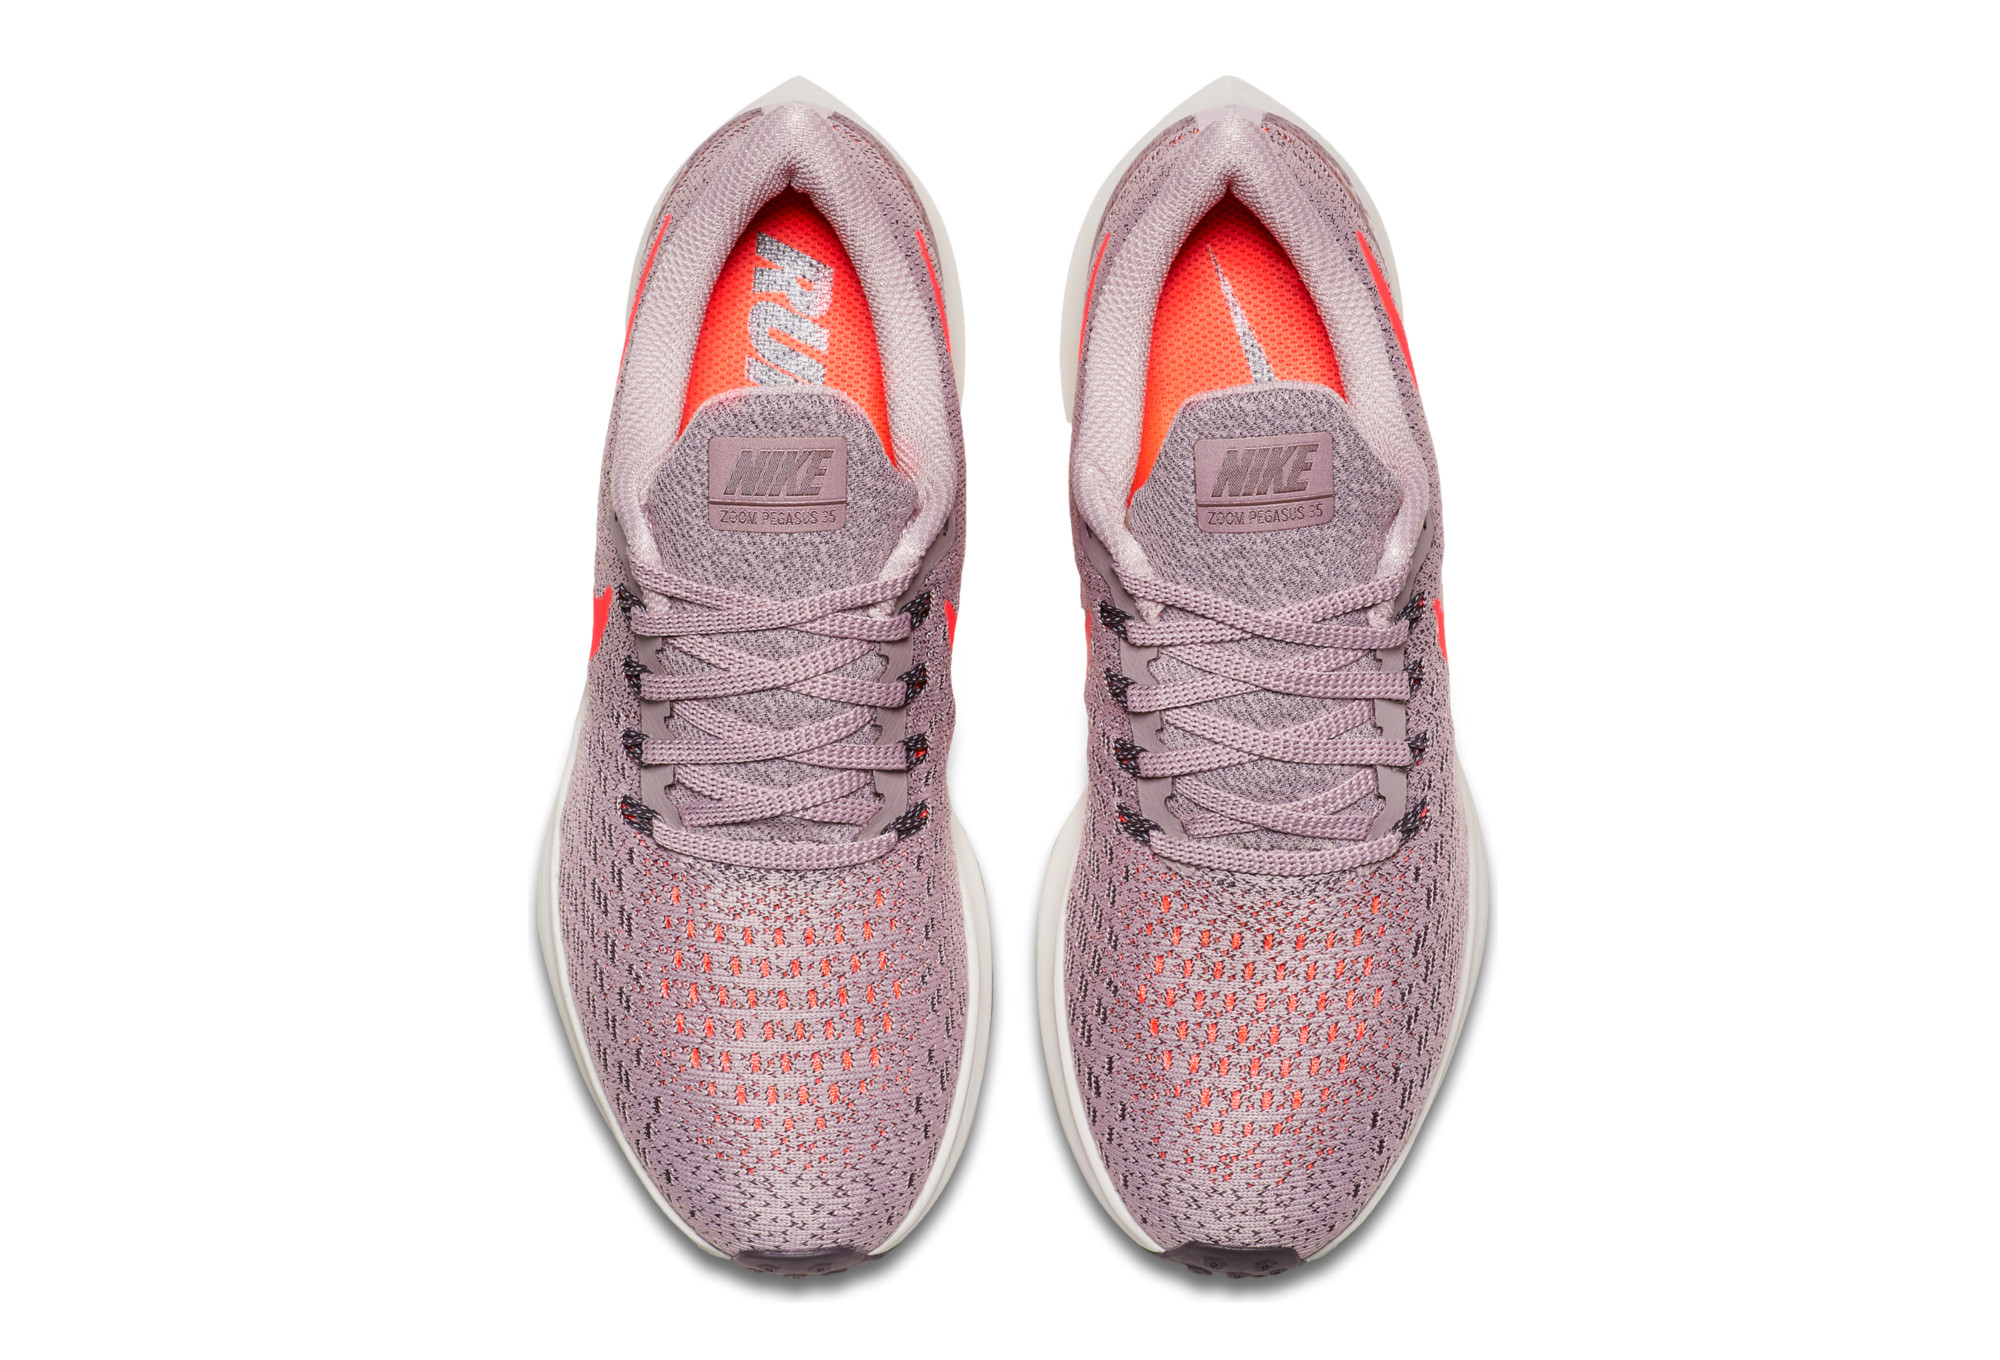 check out 3f3ea a8af3 Chaussures de Running Femme Nike Air Zoom Pegasus 35 Rose   Blanc